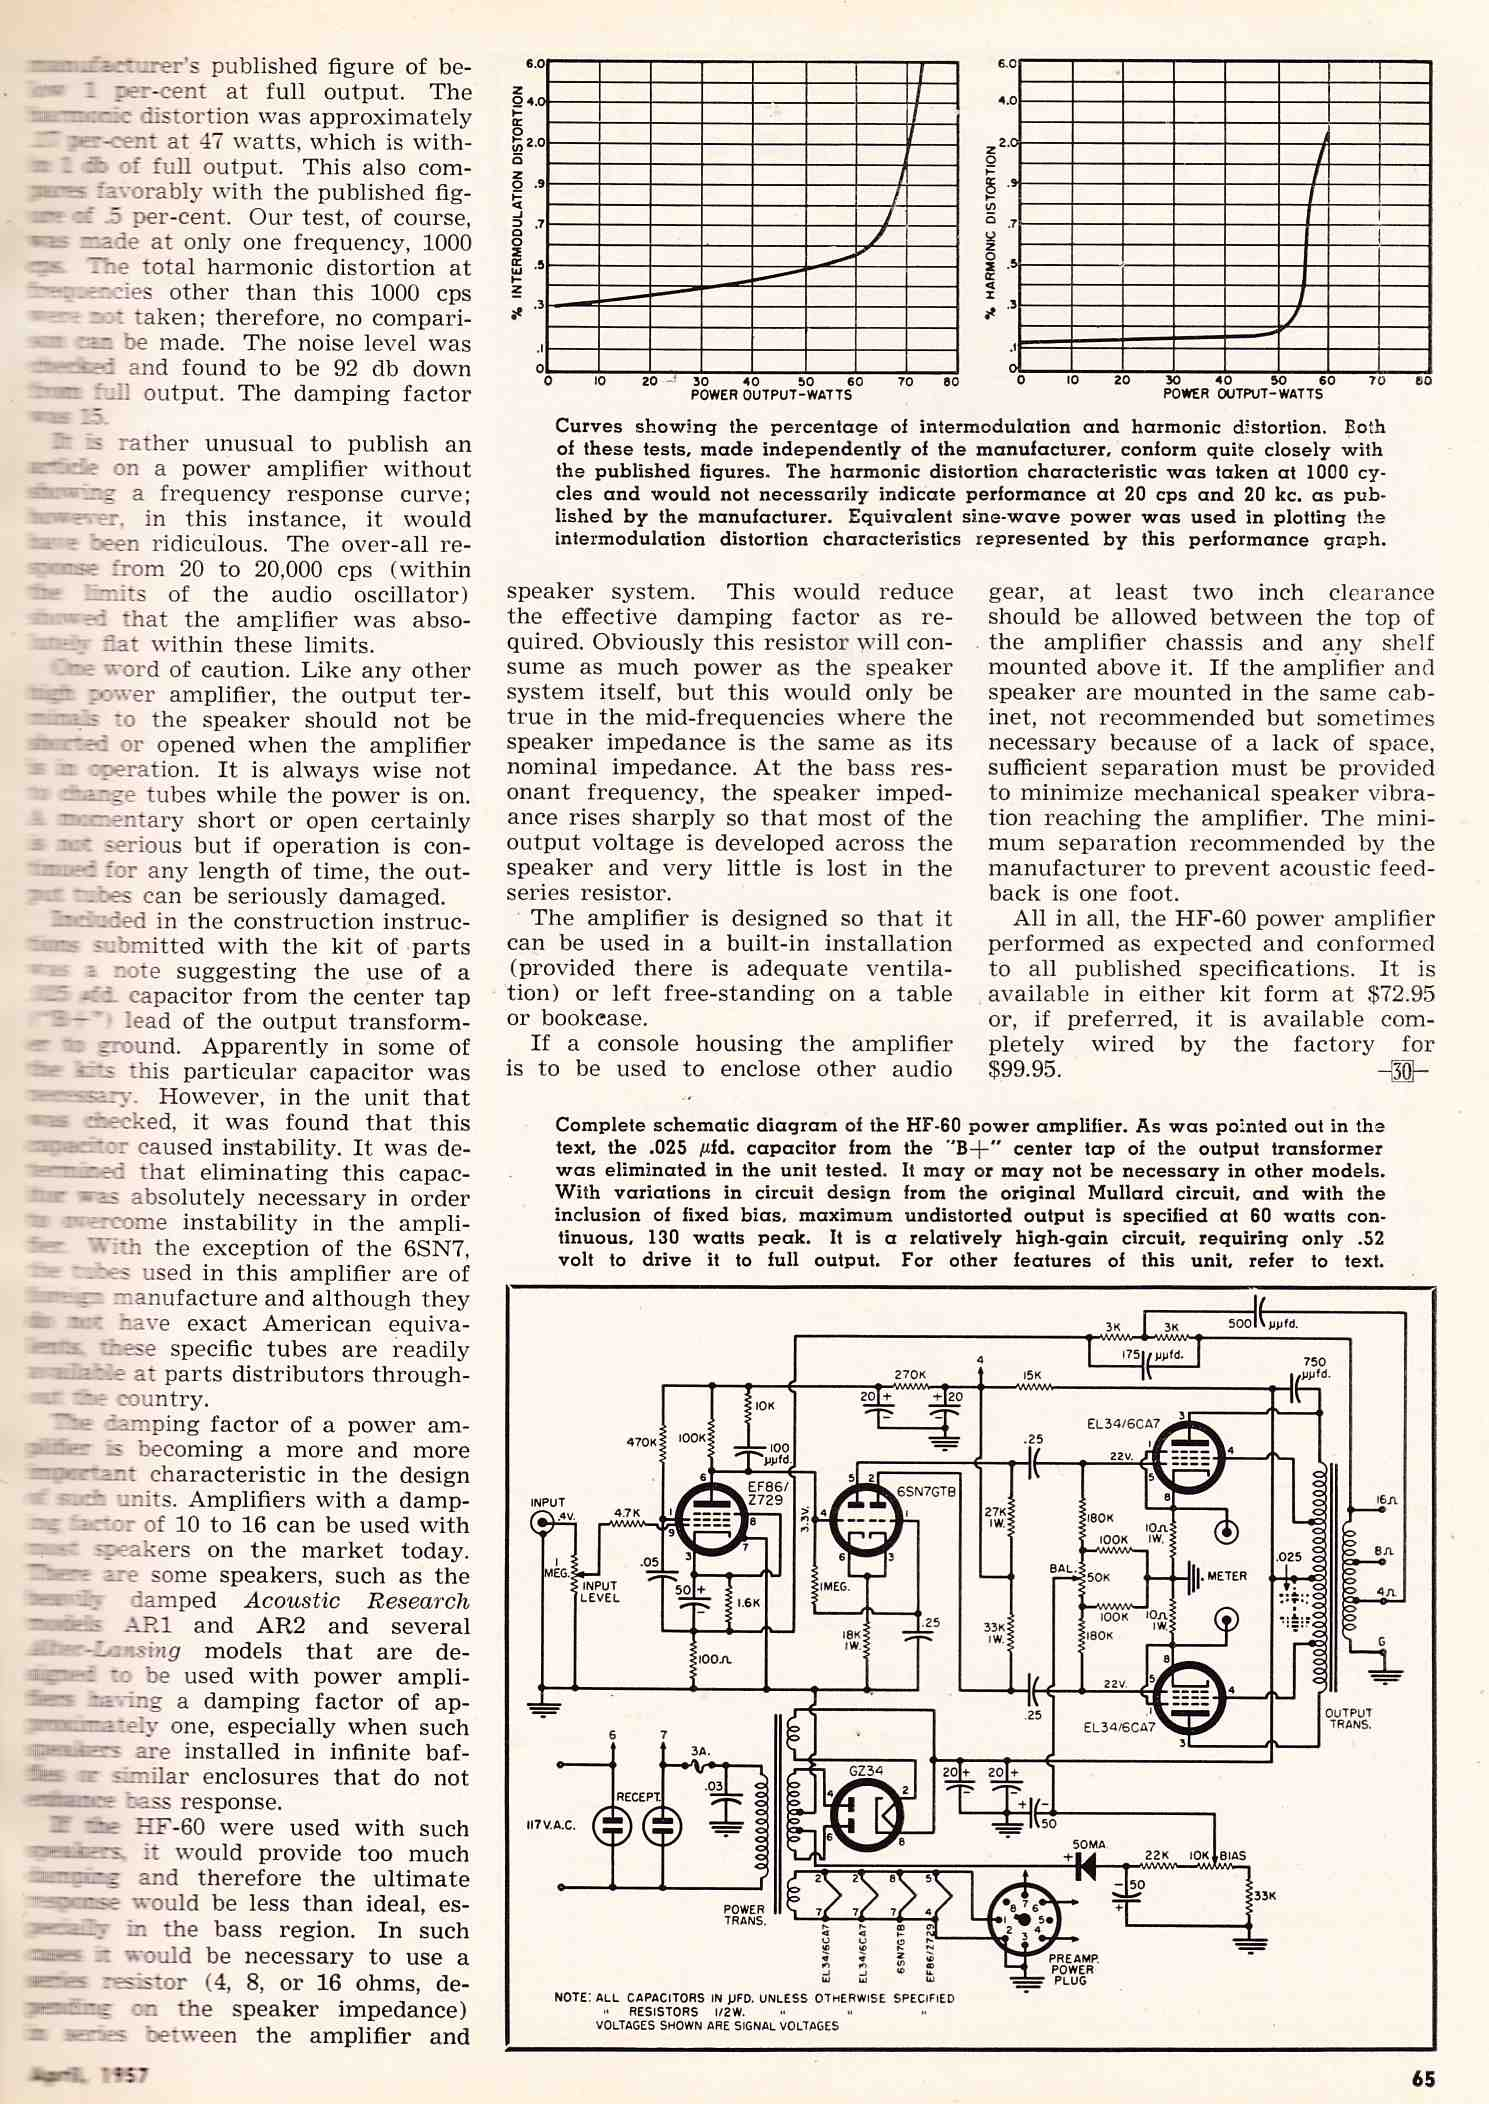 Vacuum Tube Hi Fi Preservation Sound Rectifier Circuit For Amp Tubeamplifier Audiocircuit Eico Was Essentially The Other Heathkit Eicos Could Be Purchased Either Wired Or As Kits Heres A Two Page Article On Their Flagship Hf60